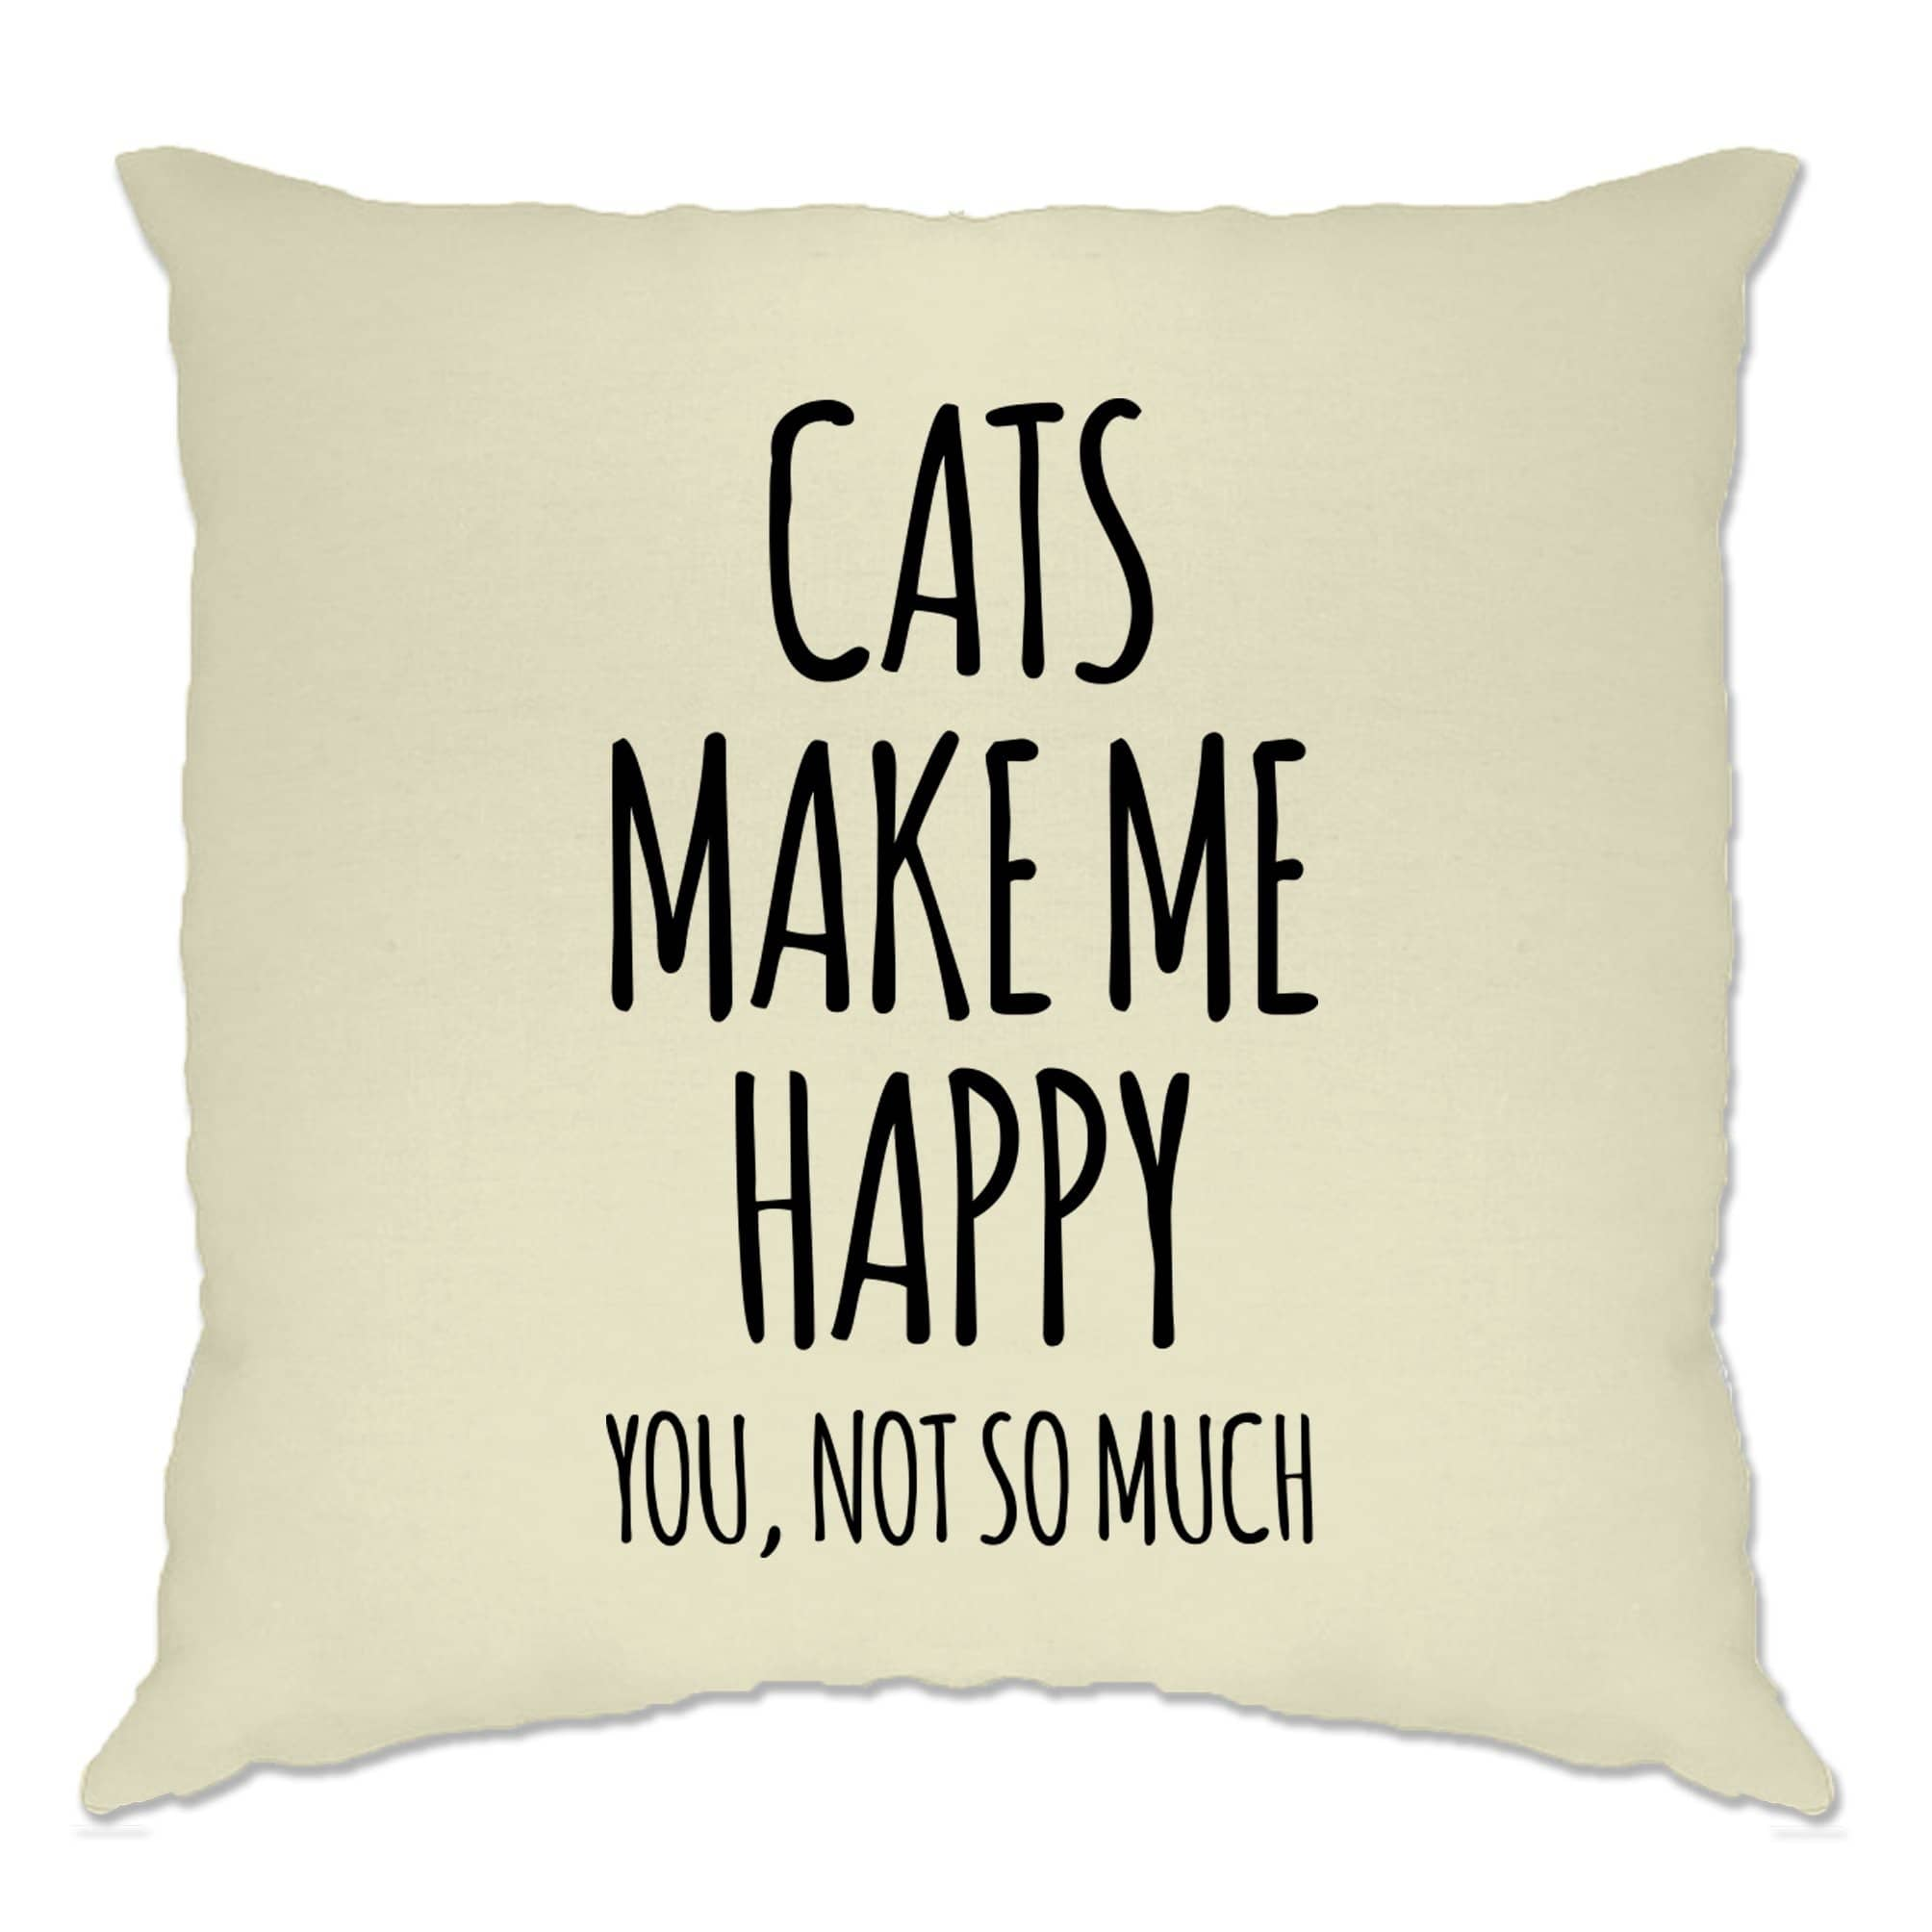 Novelty Cushion Cover Cats Make Me Happy, You, Not So Much